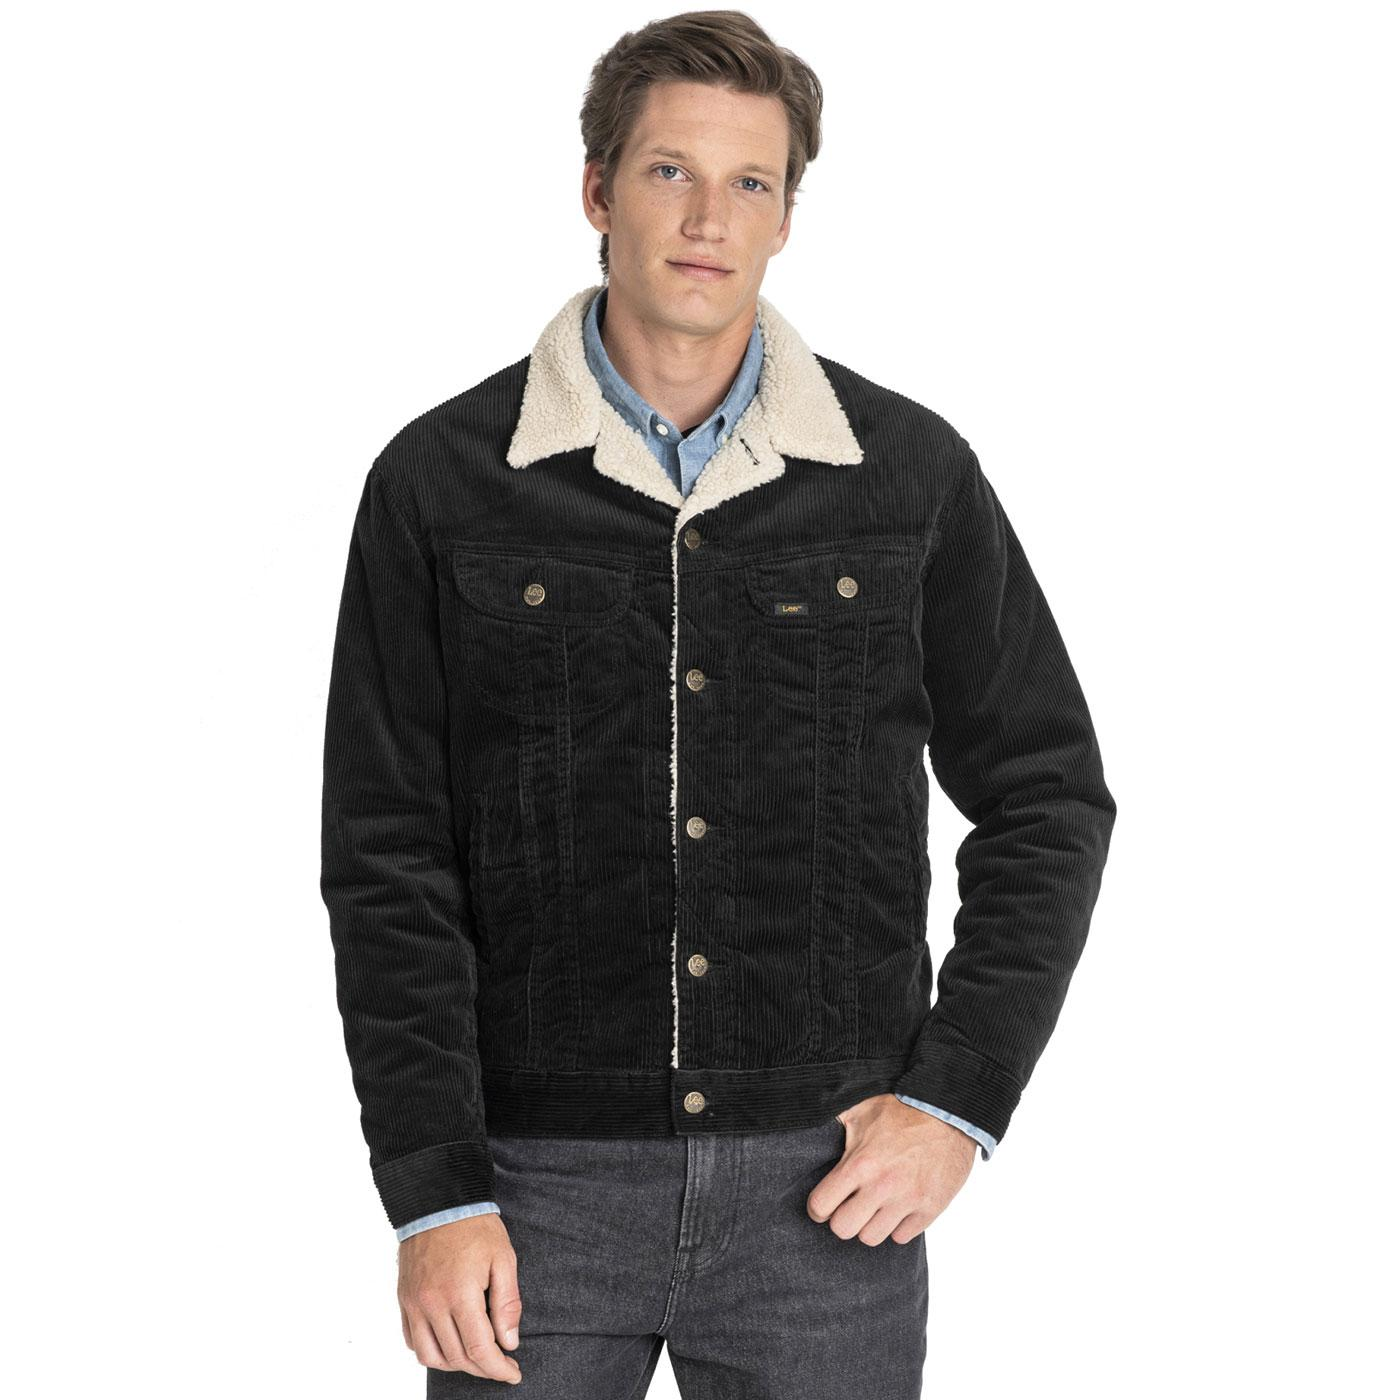 Sherpa Rider LEE JEANS Retro Western Cord Jacket B